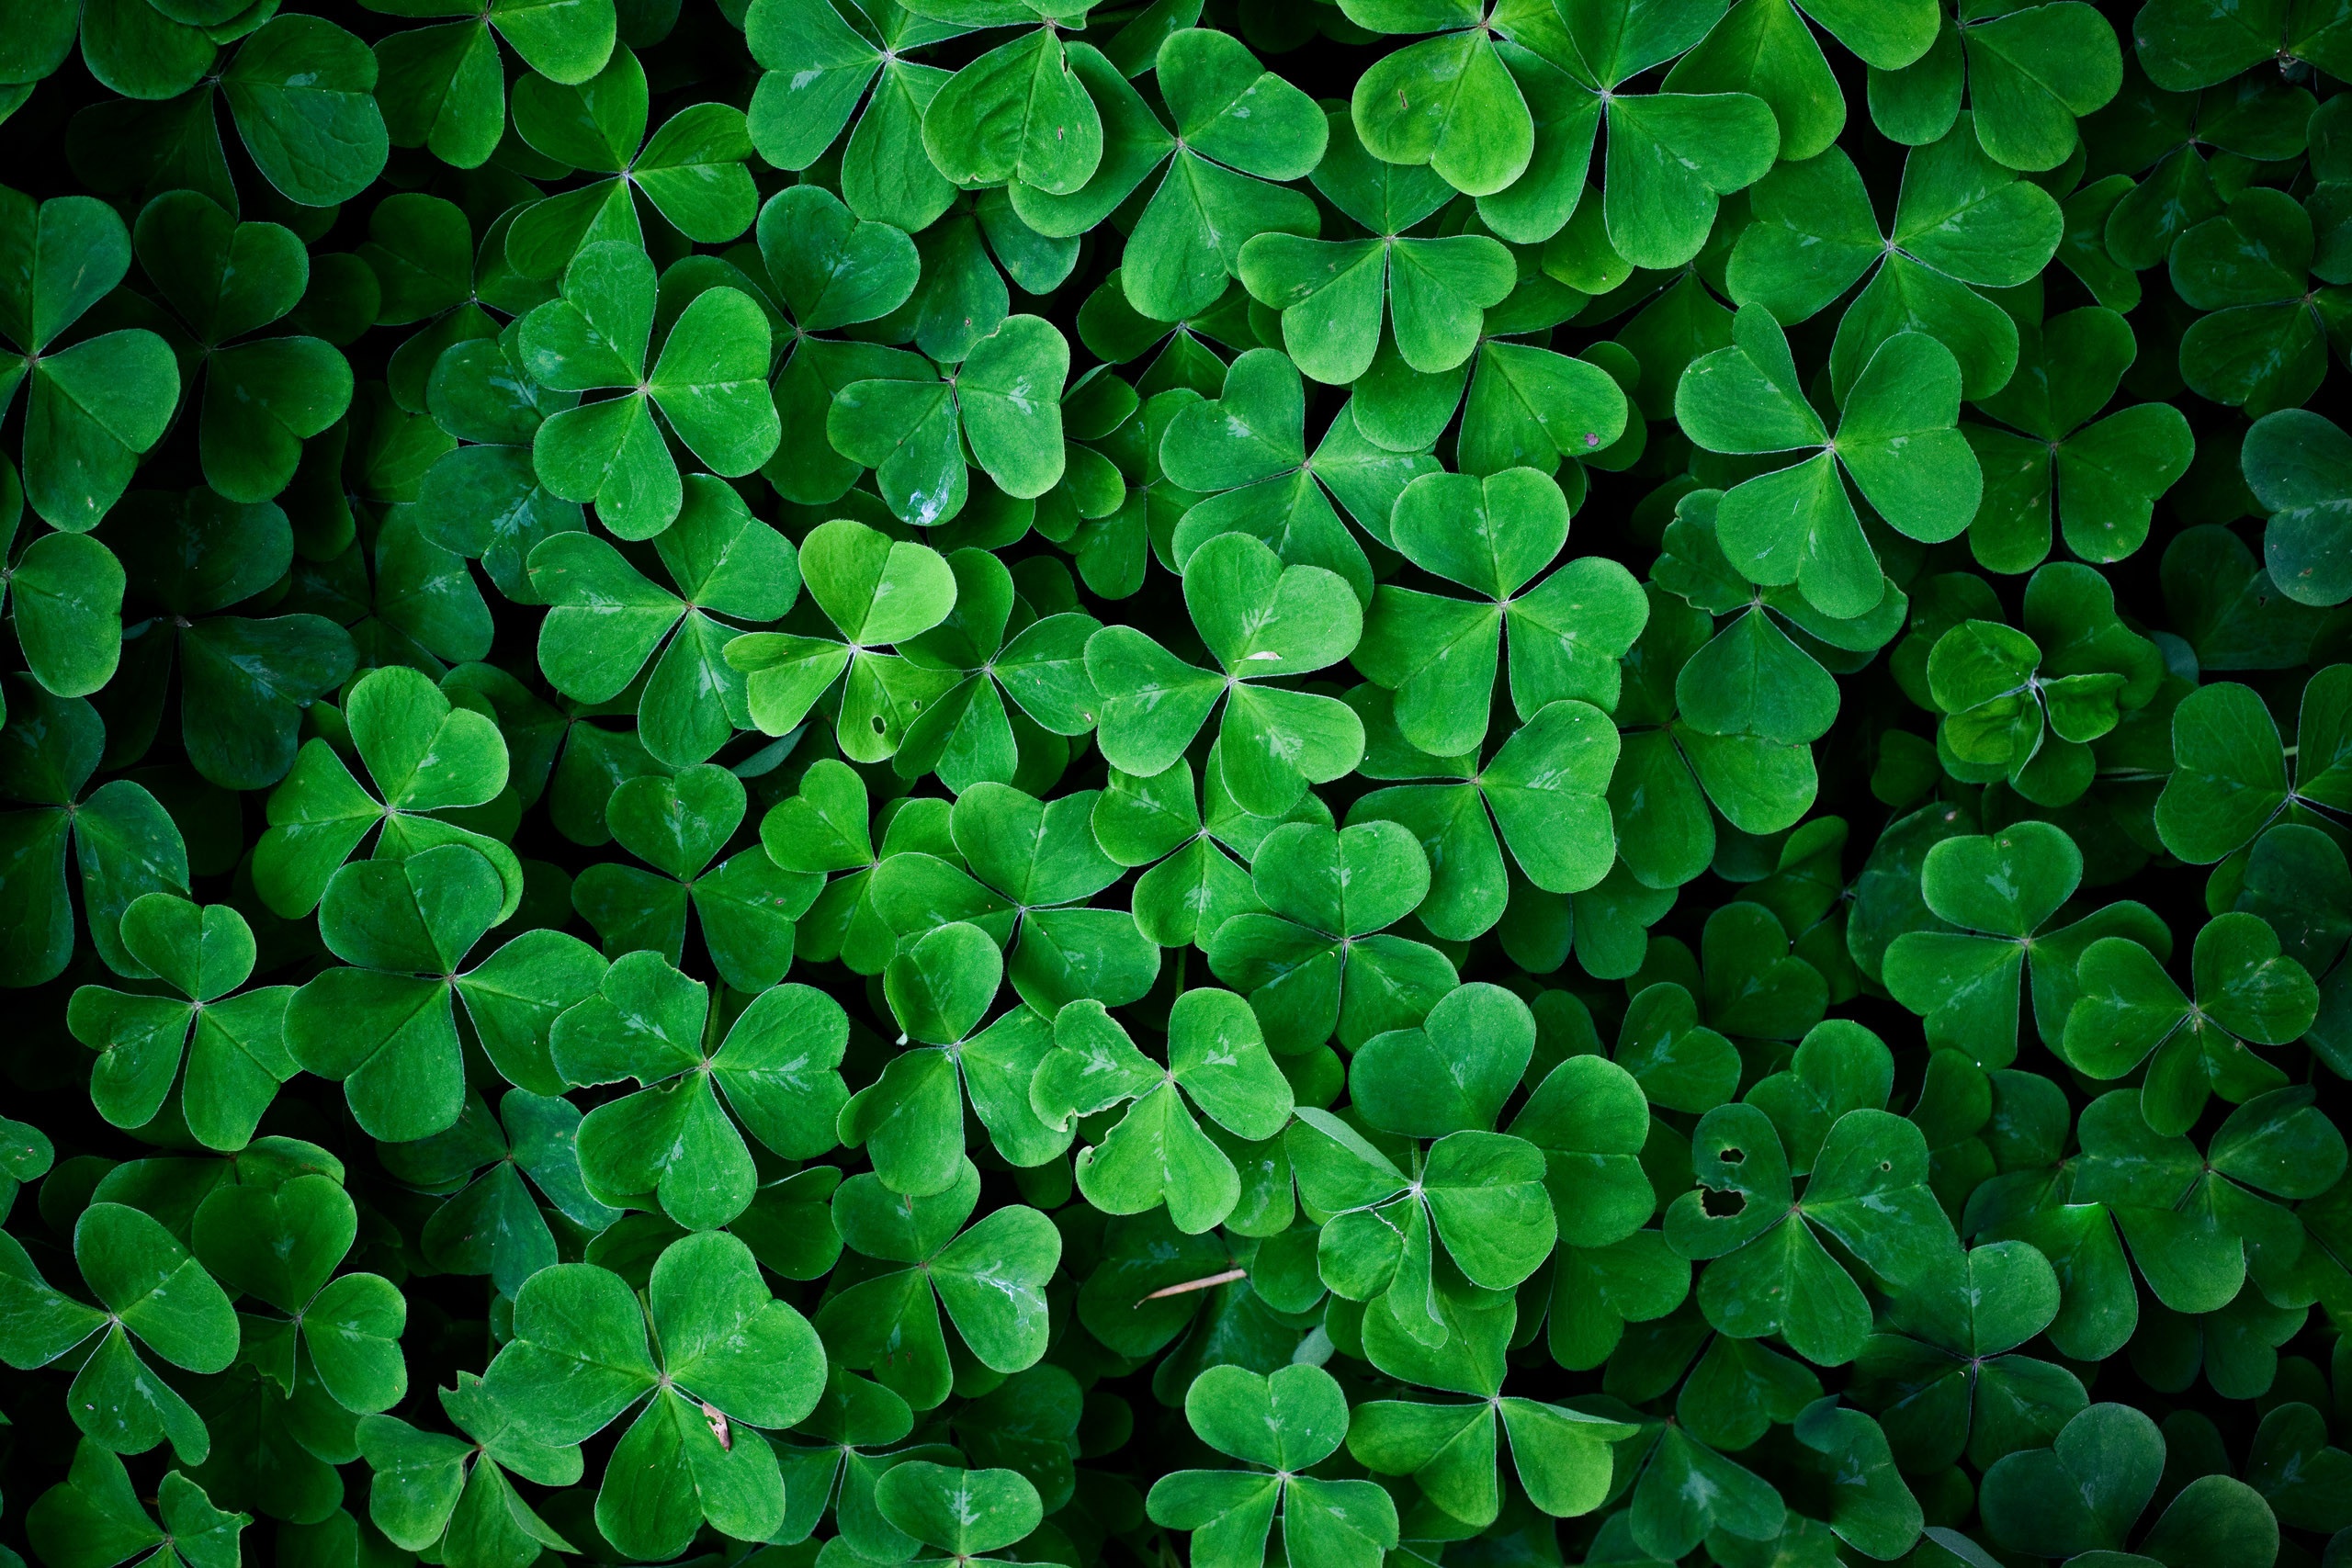 2560x1707 Green leaves clover wall HD nature wallpaper.